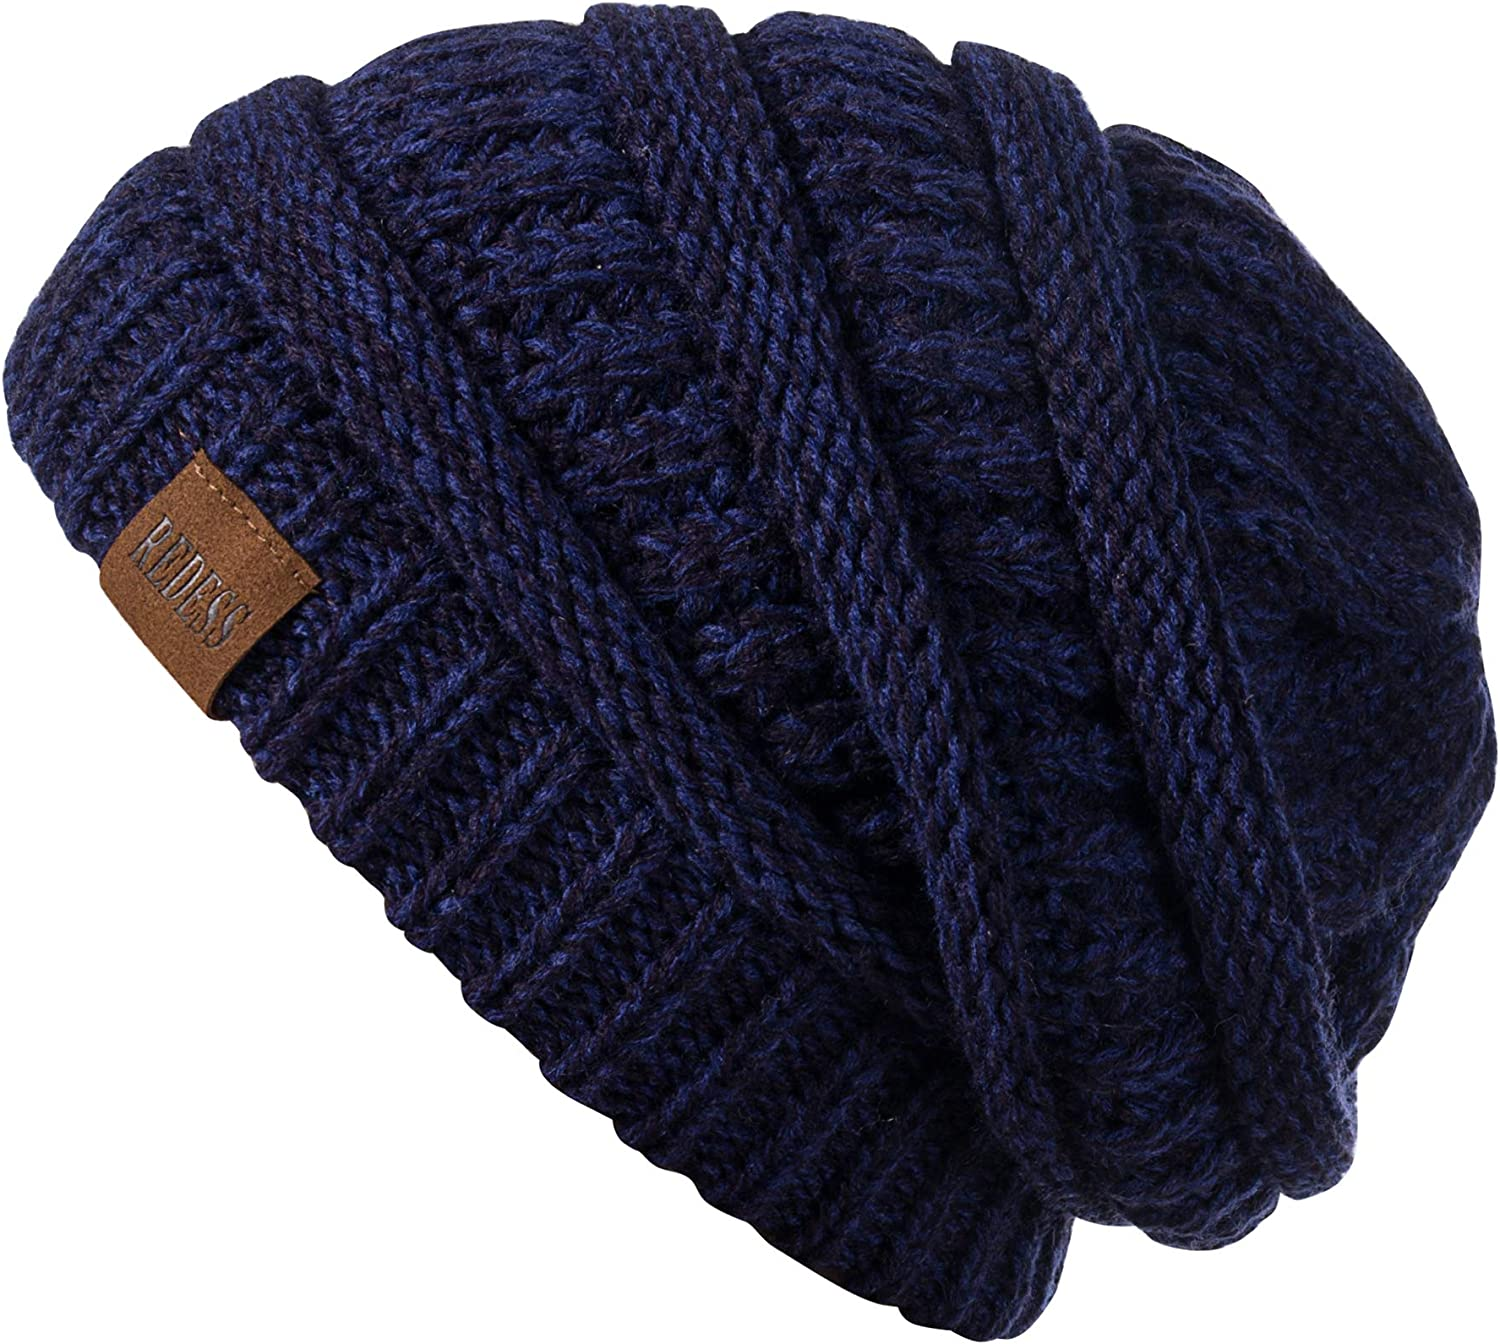 REDESS Slouchy Beanie Hat for Men and Women Winter Warm Chunky Soft Oversized Cable Knit Cap